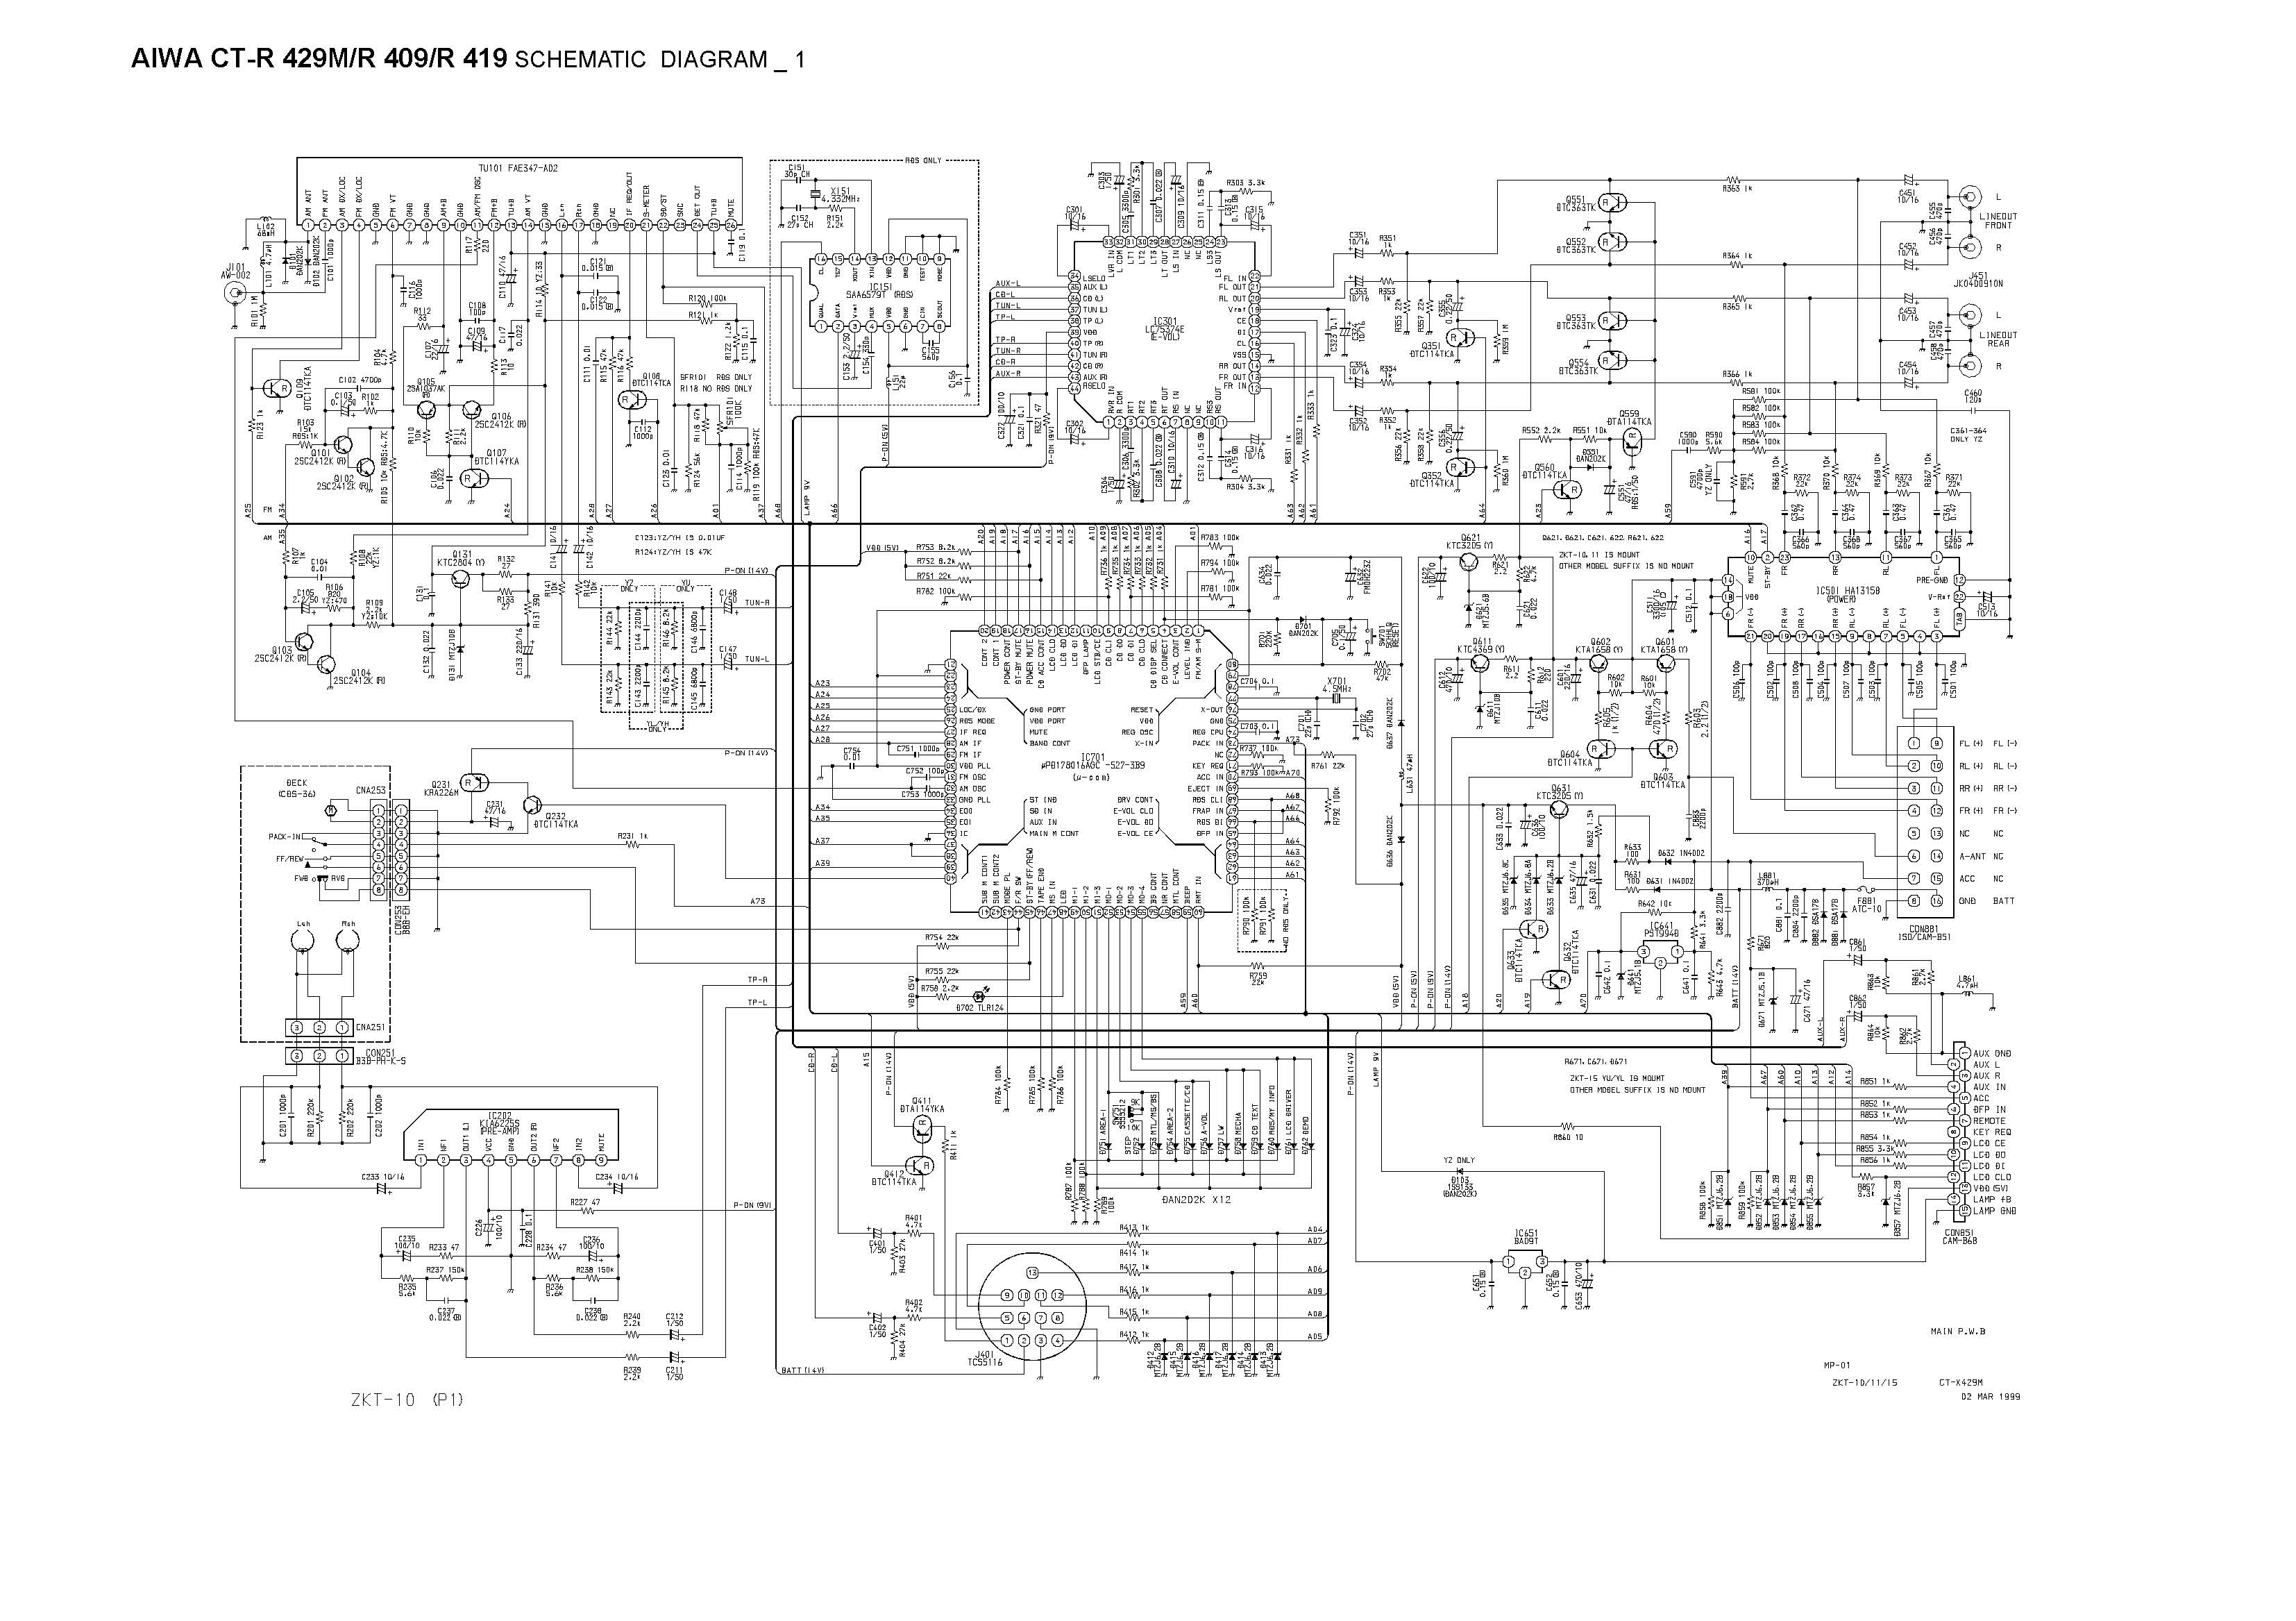 Aiwa Ct R 429 M Schematic Diagram Main Front In